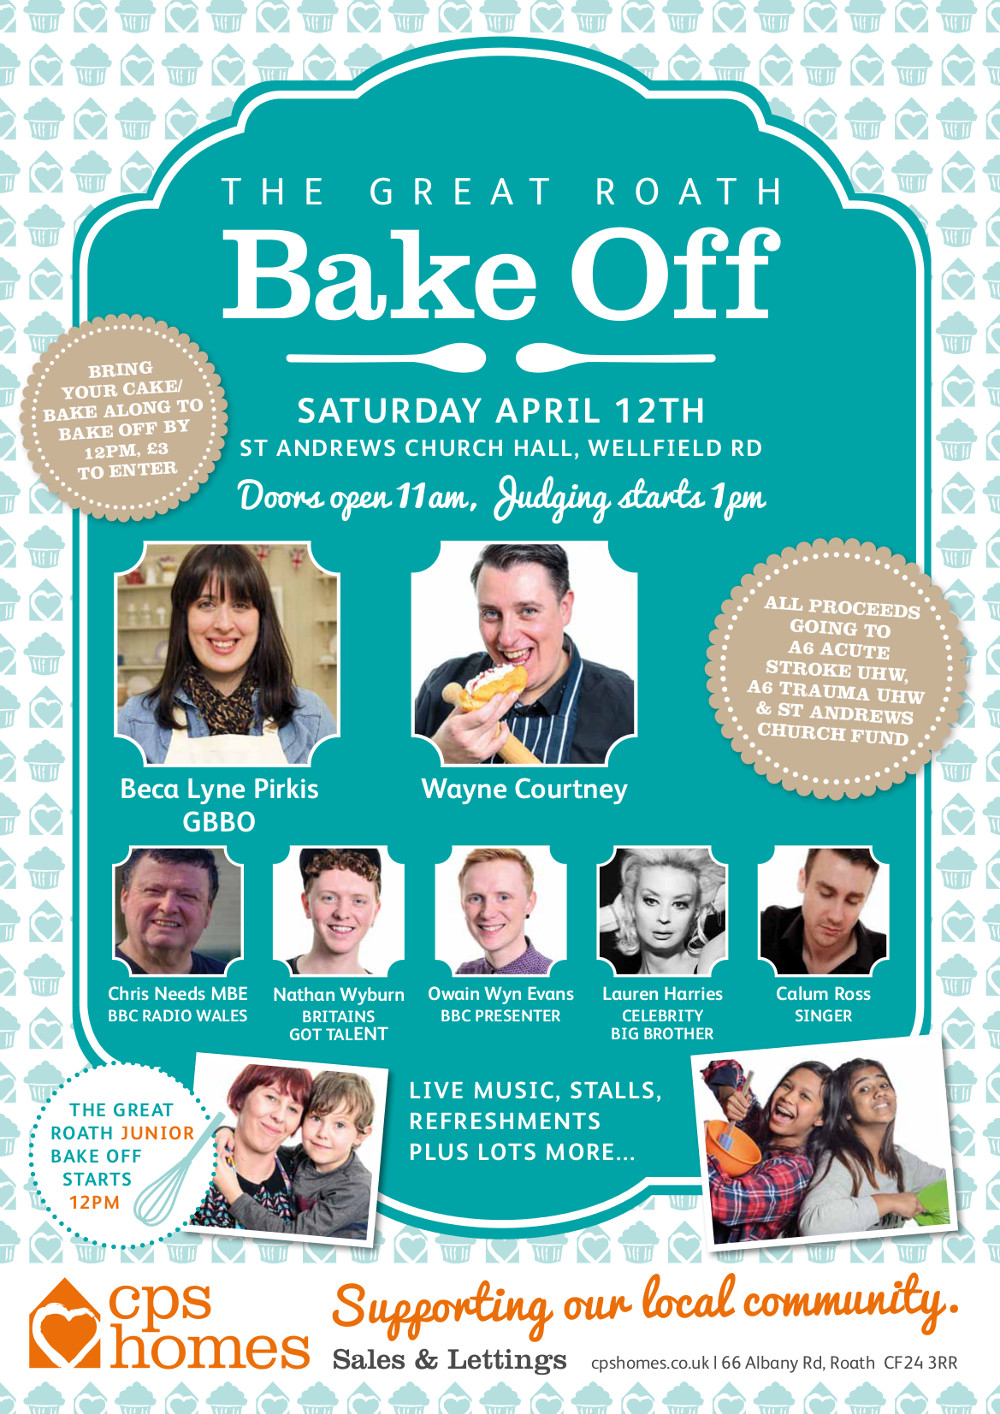 Great Roath Bake Off 2014, sponsored by CPS Homes